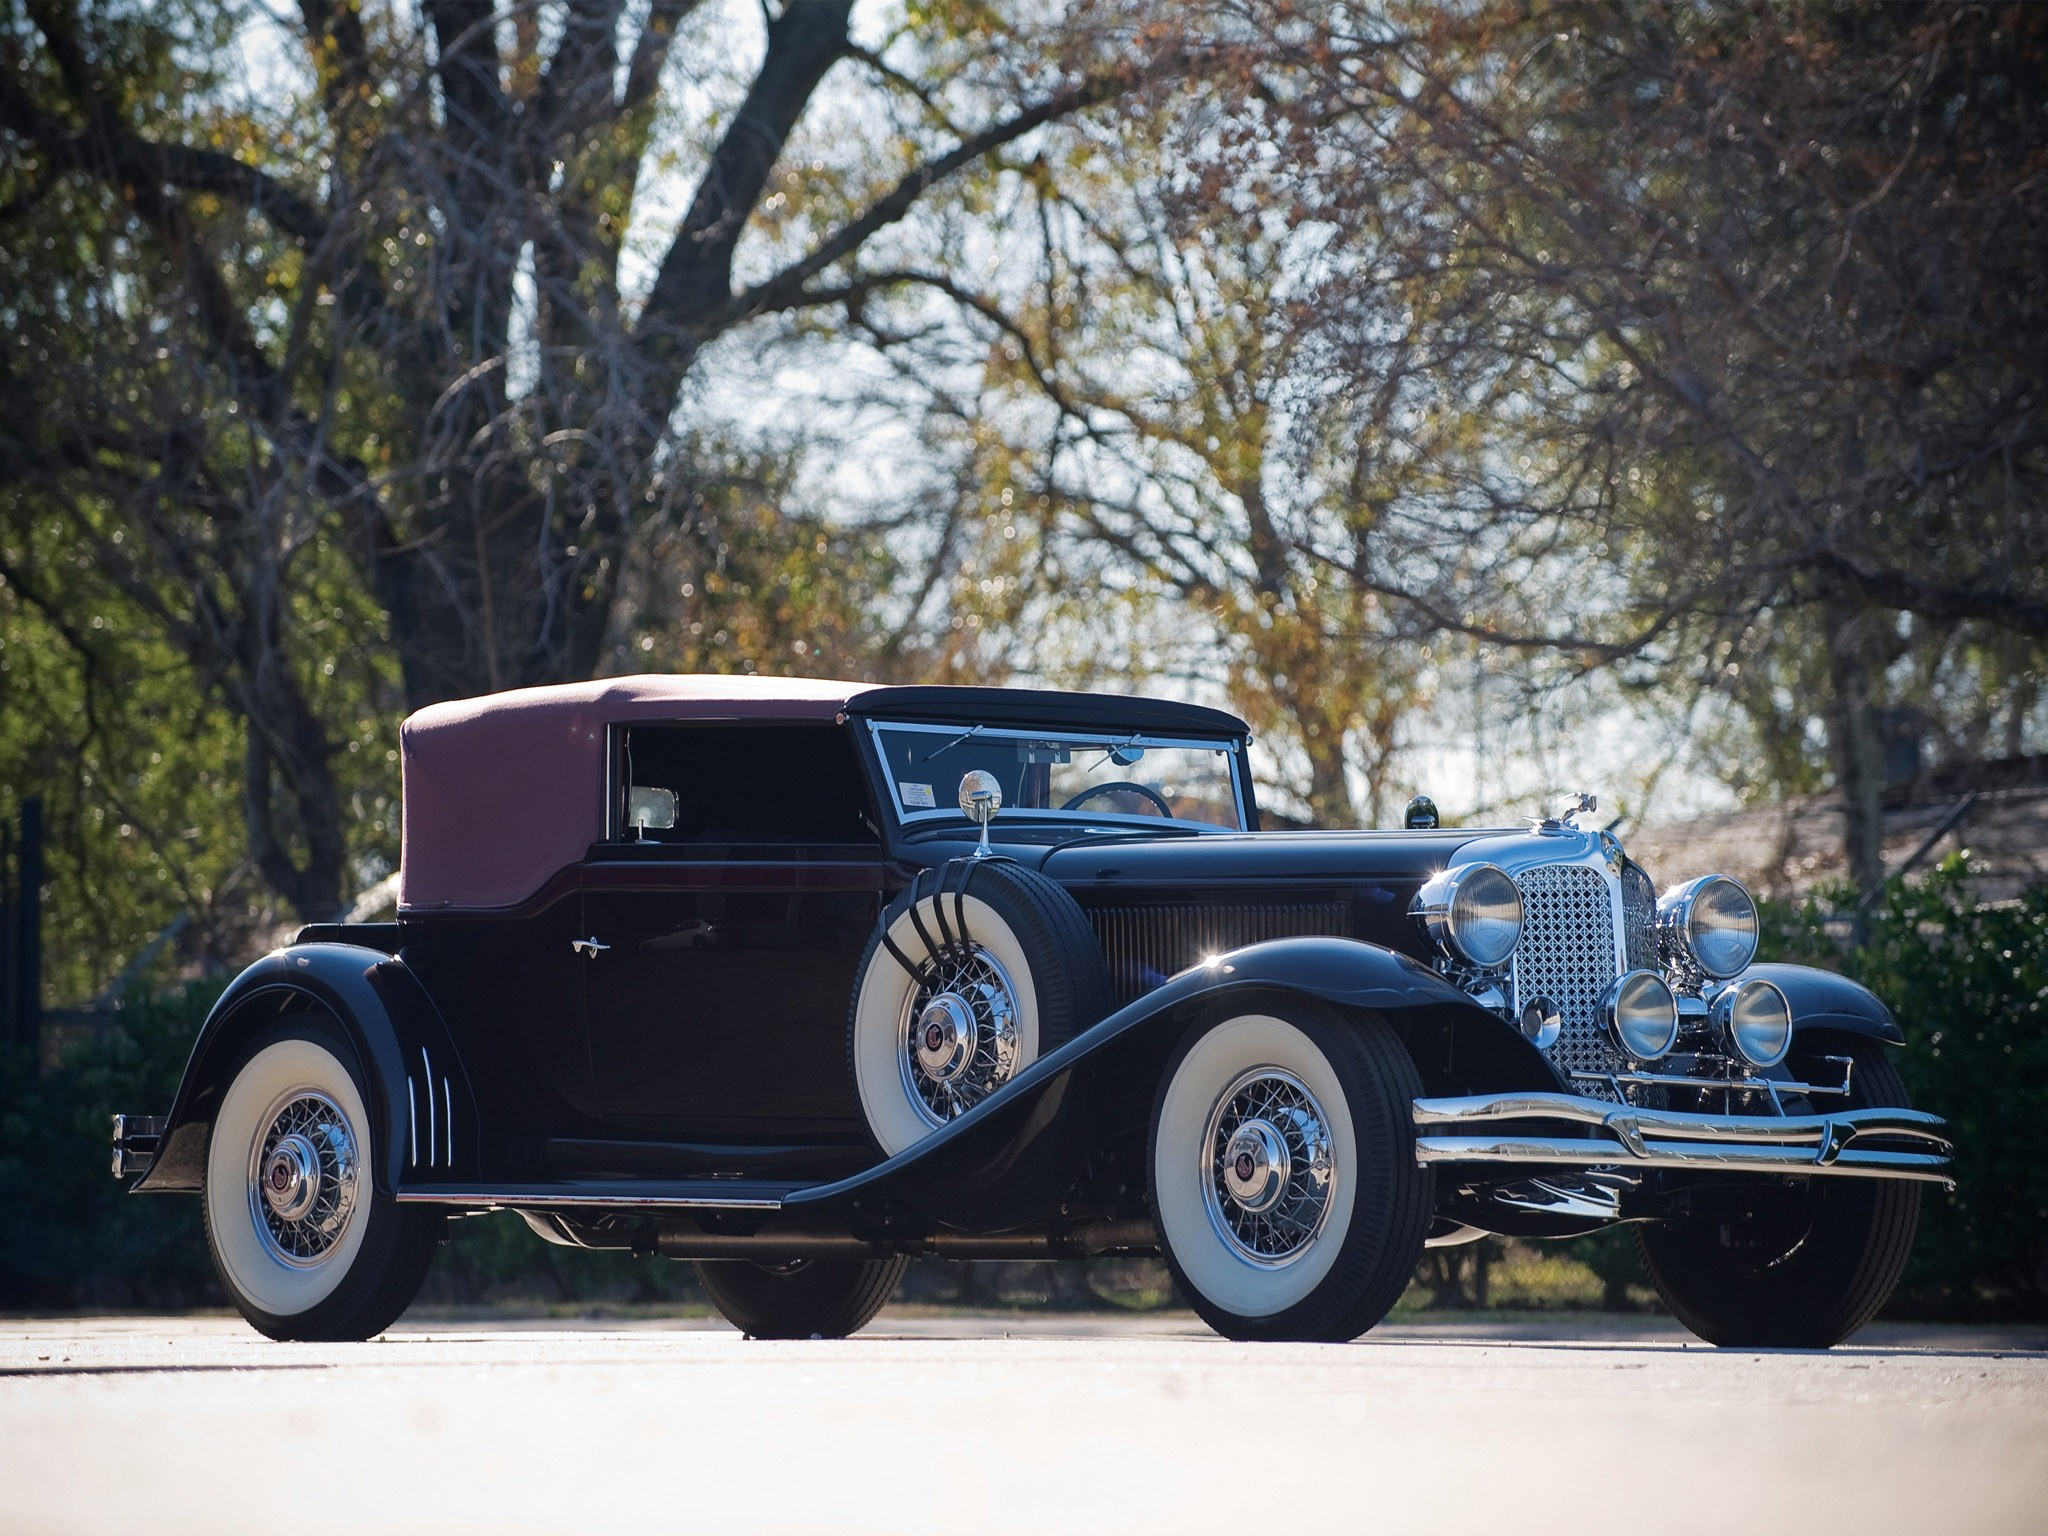 Chrysler CG Imperial Convertible Victoria by Waterhouse 1931